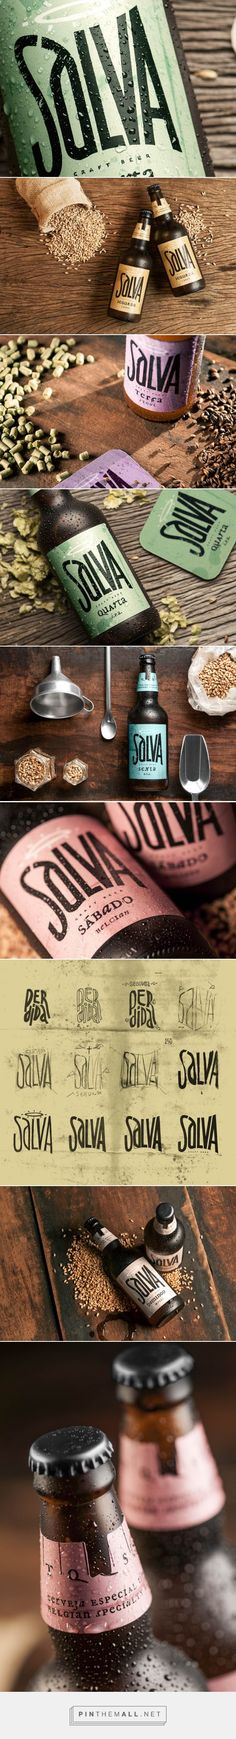 Identity & Packaging of Salva Craft Beer | Abduzeedo Design Inspiration